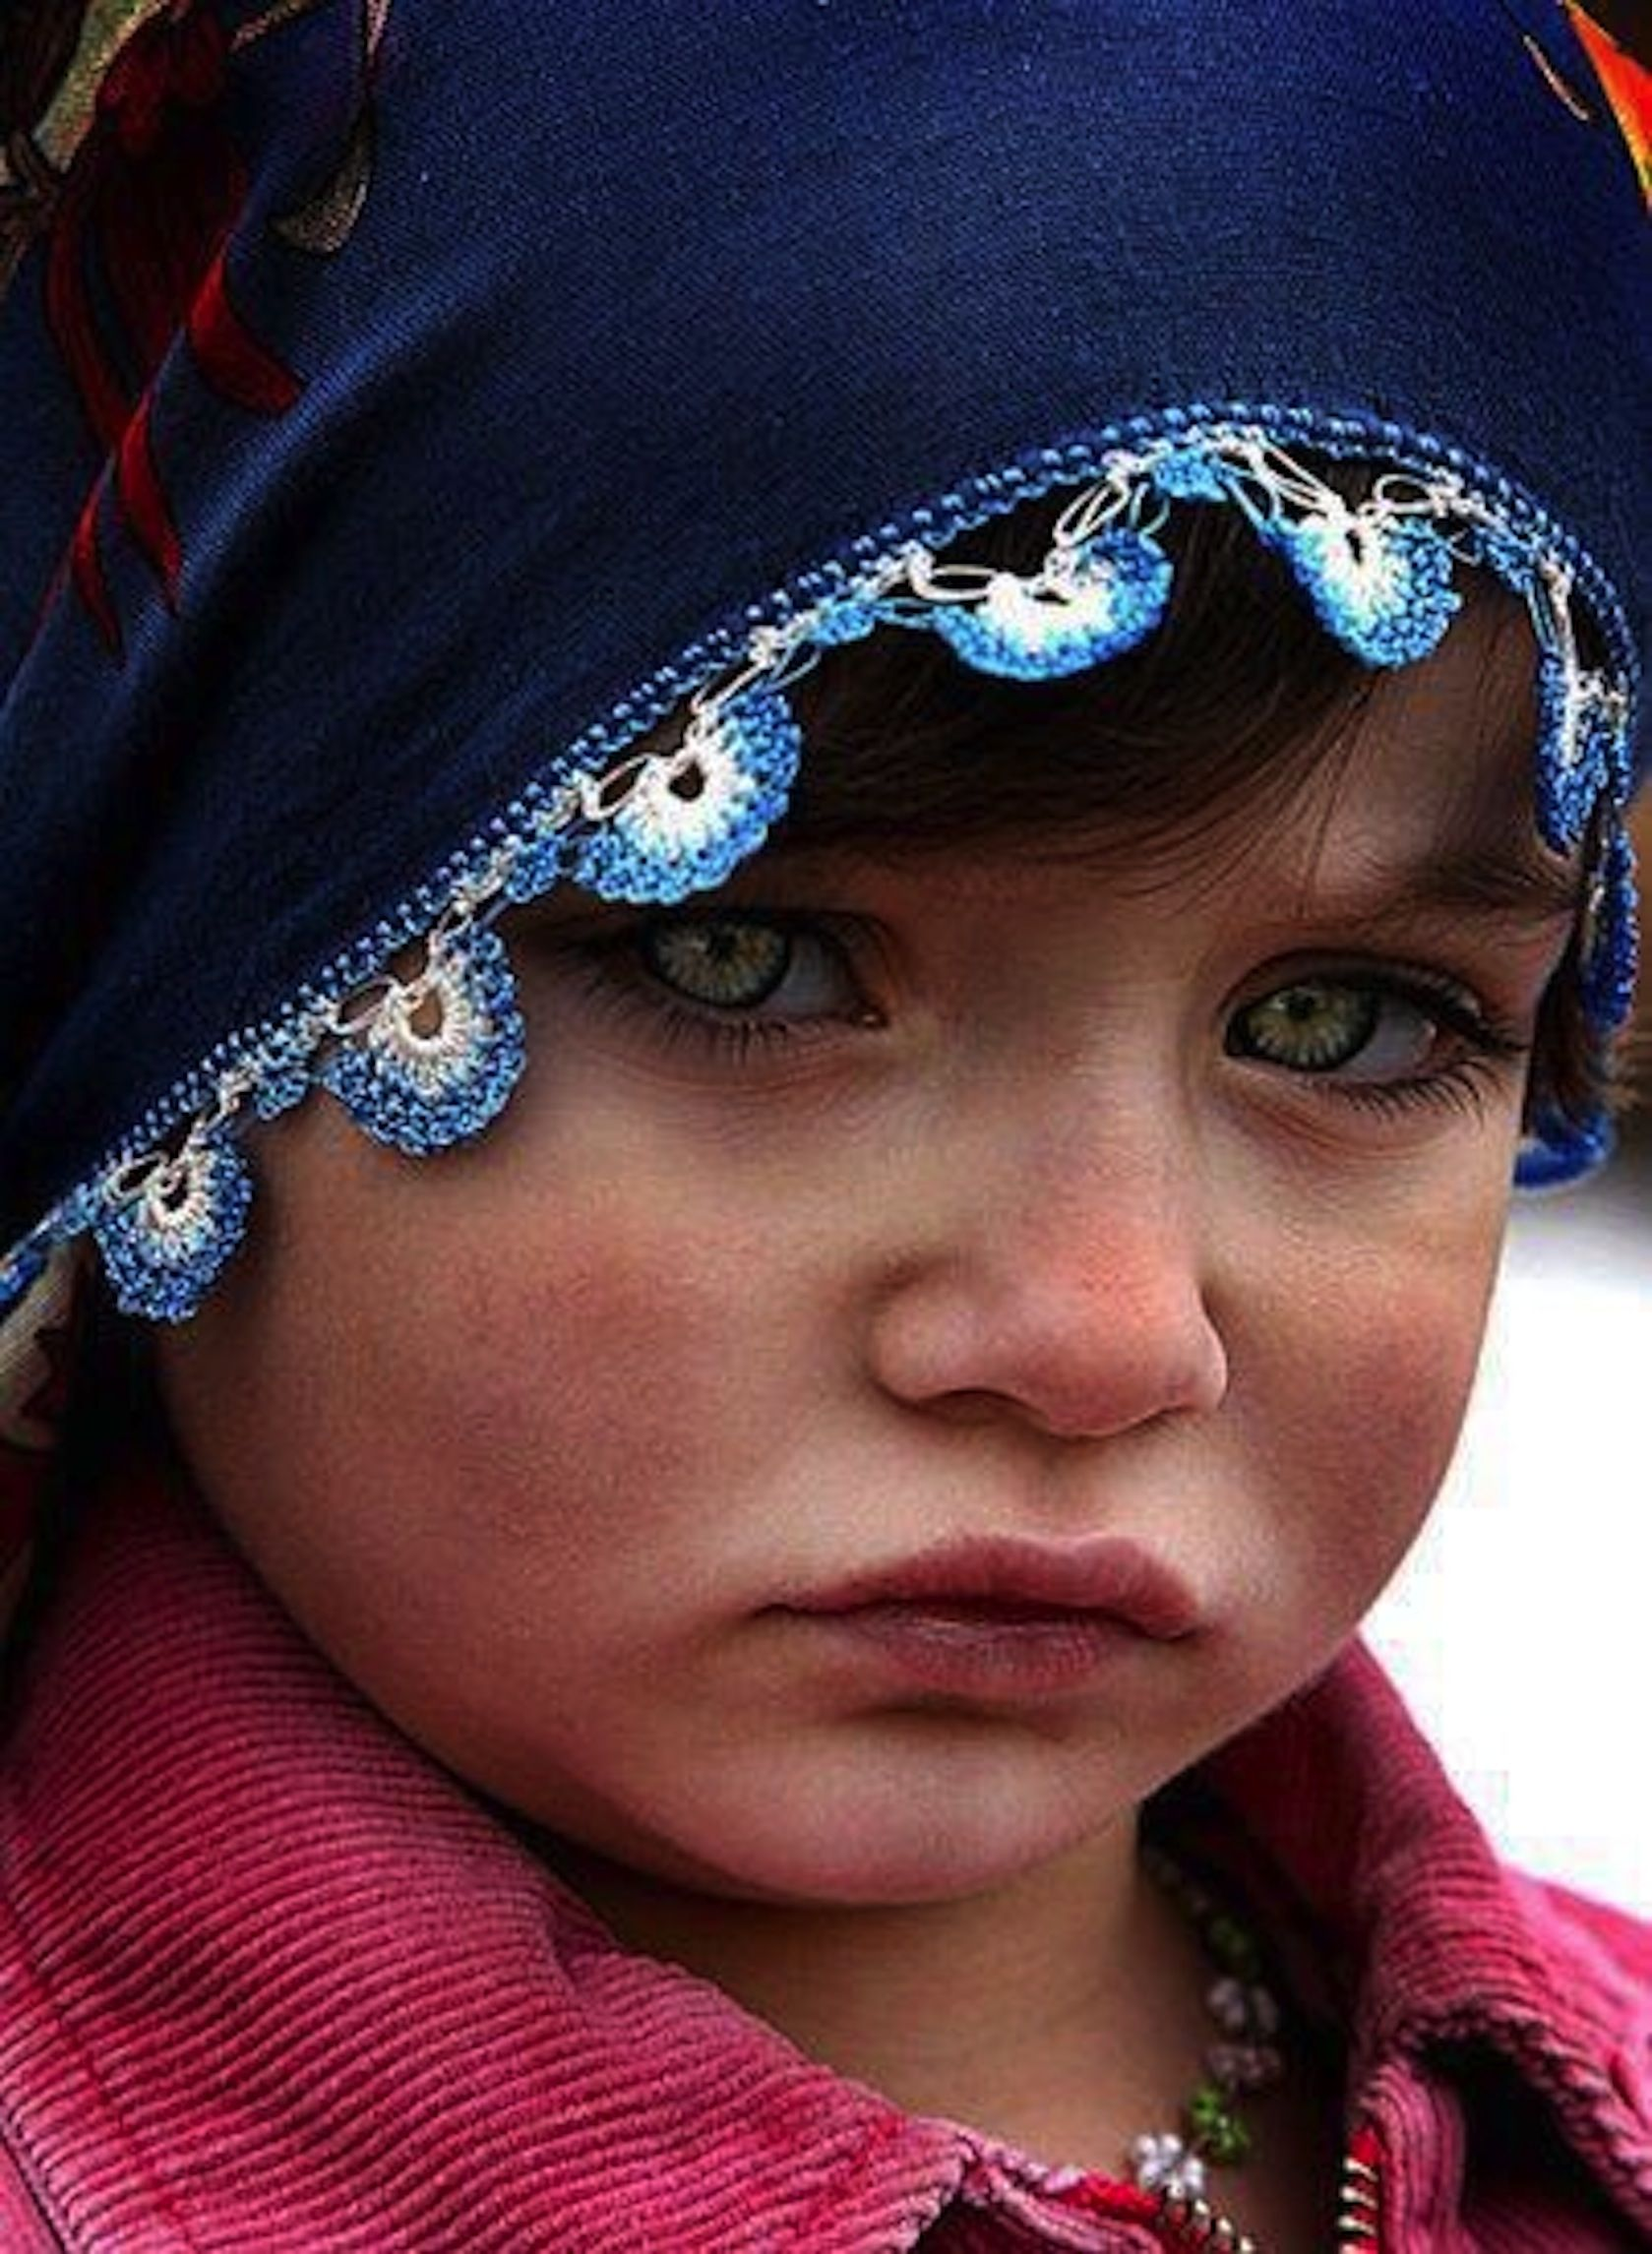 Beautiful Kurdish Girl Precious One Faces 2 All